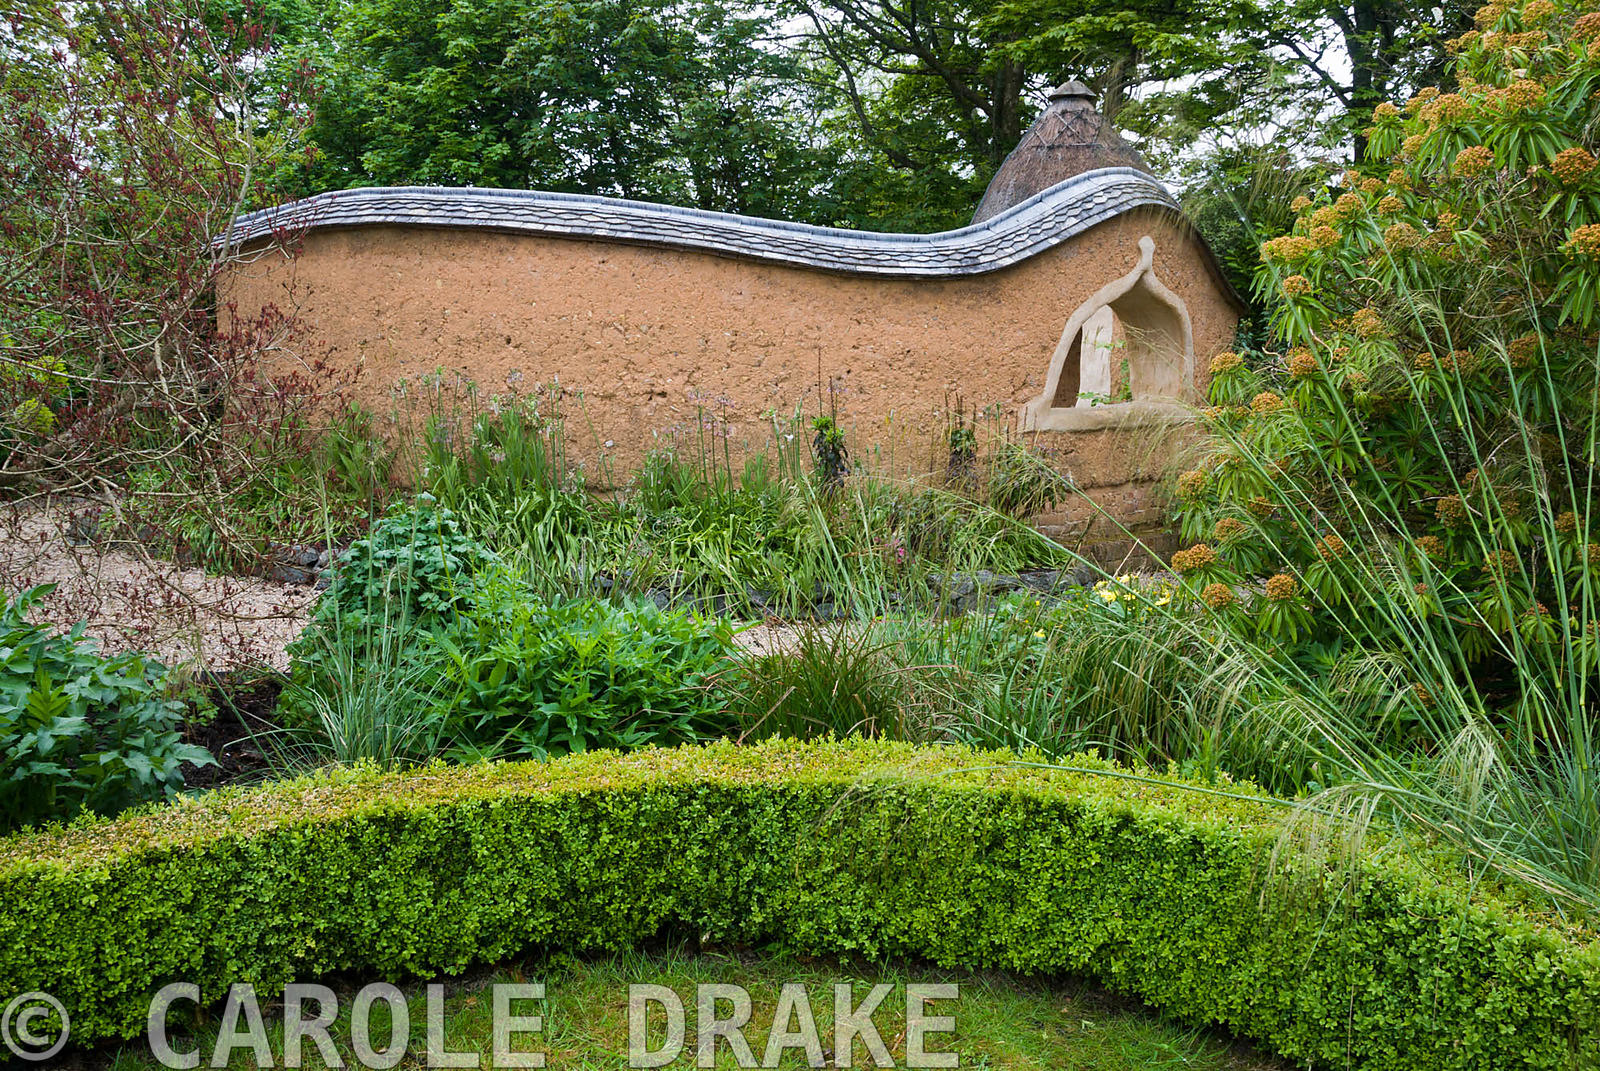 View towards Pond Garden surrounded by cob wall, topped with tiles and thatch, across box hedging, past Stipa gigantea, Cotin...